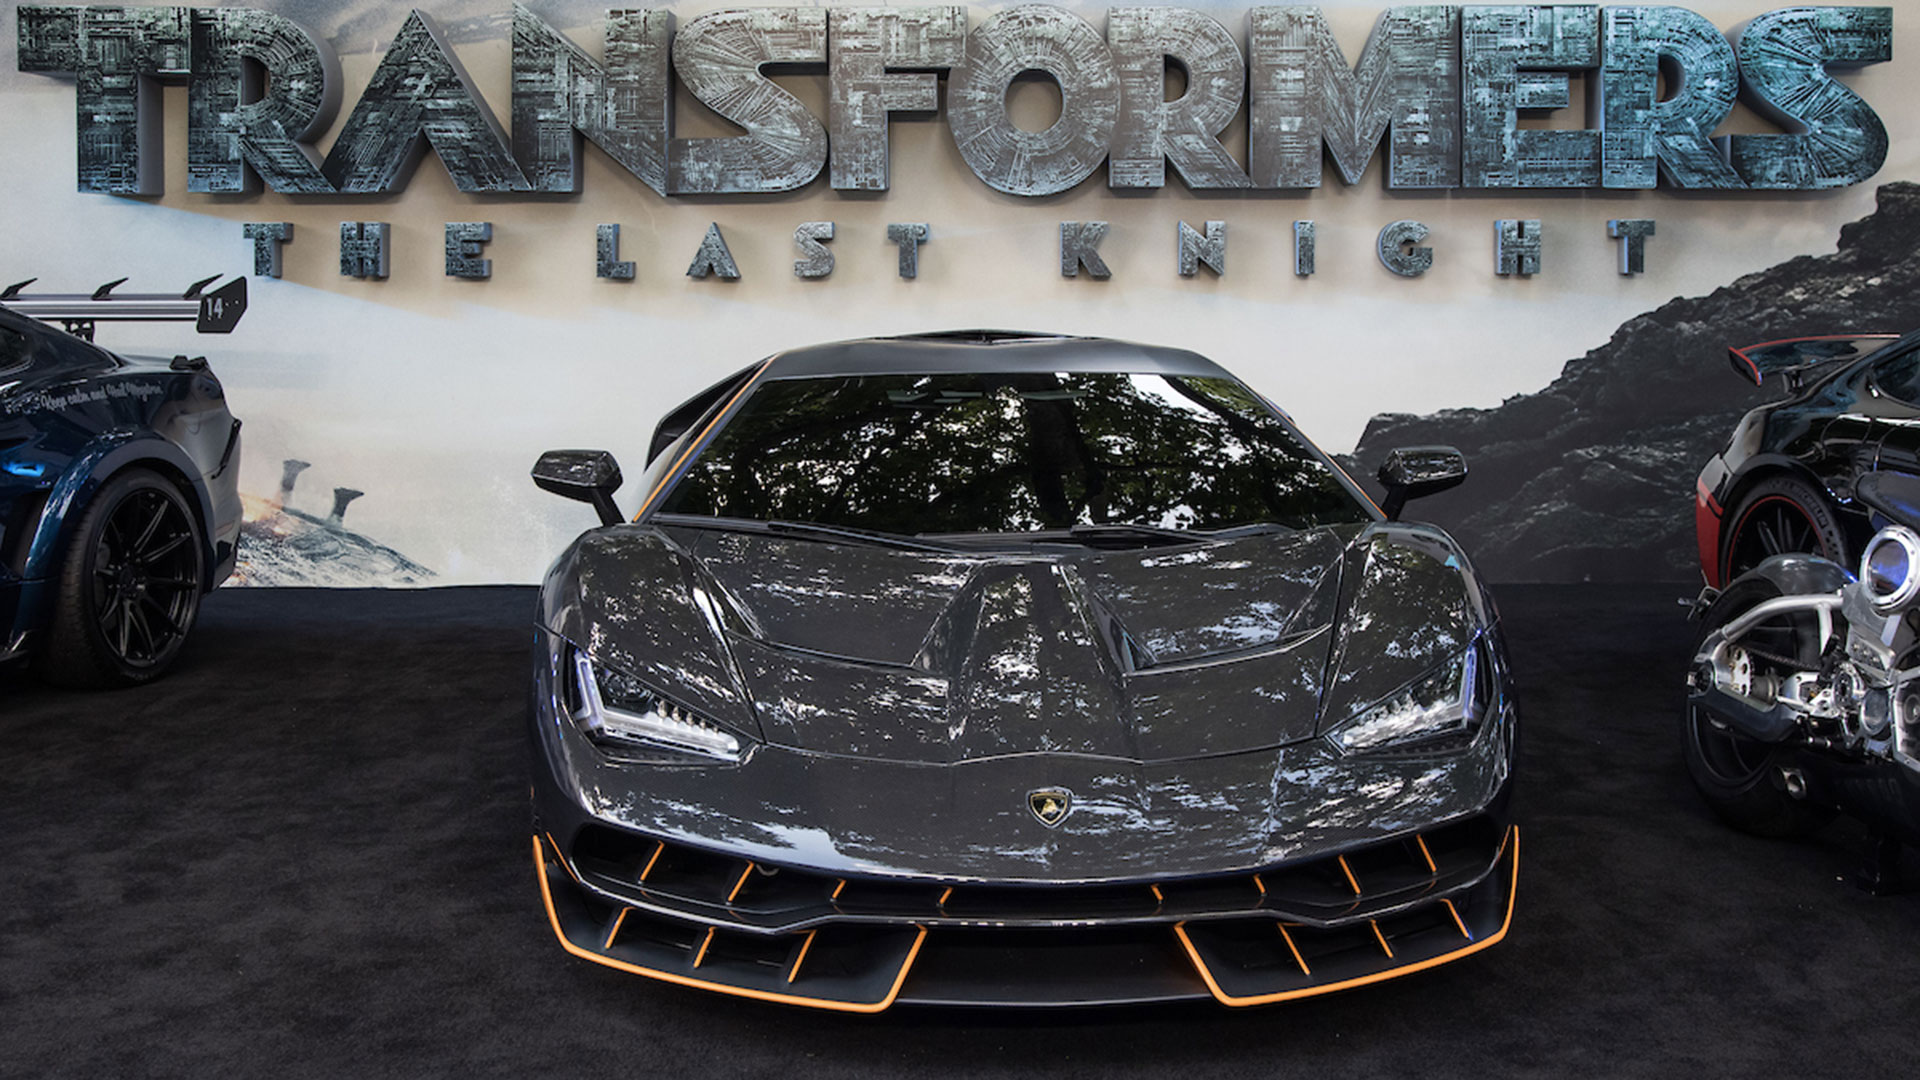 THE LAMBORGHINI CENTENARIO AT THE TRANSFORMERS